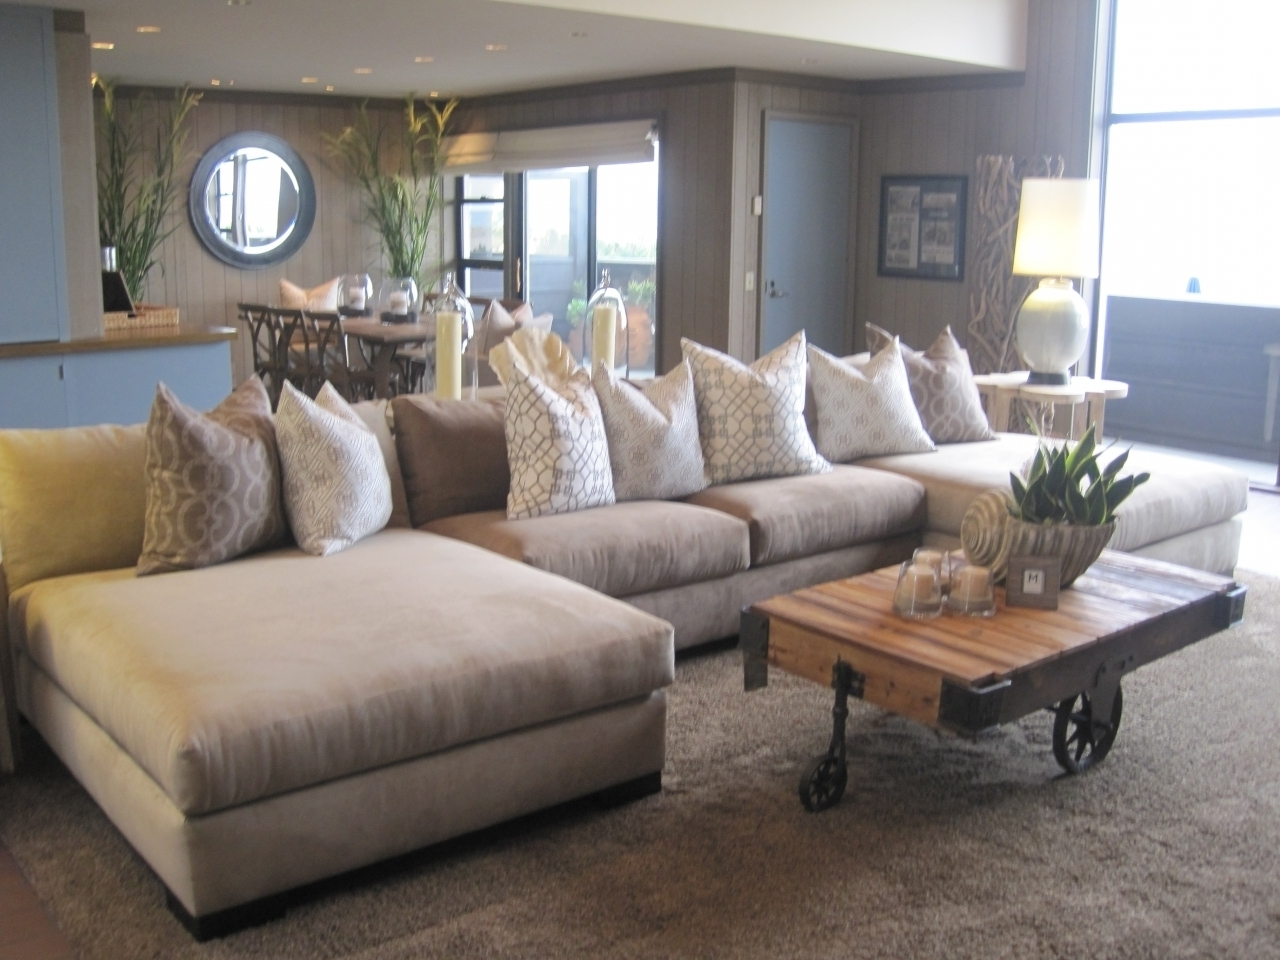 Most Recently Released Sectional Sofas With Oversized Ottoman Within Sofa : Living Room: Sectional With Chaise Lounge (View 4 of 15)